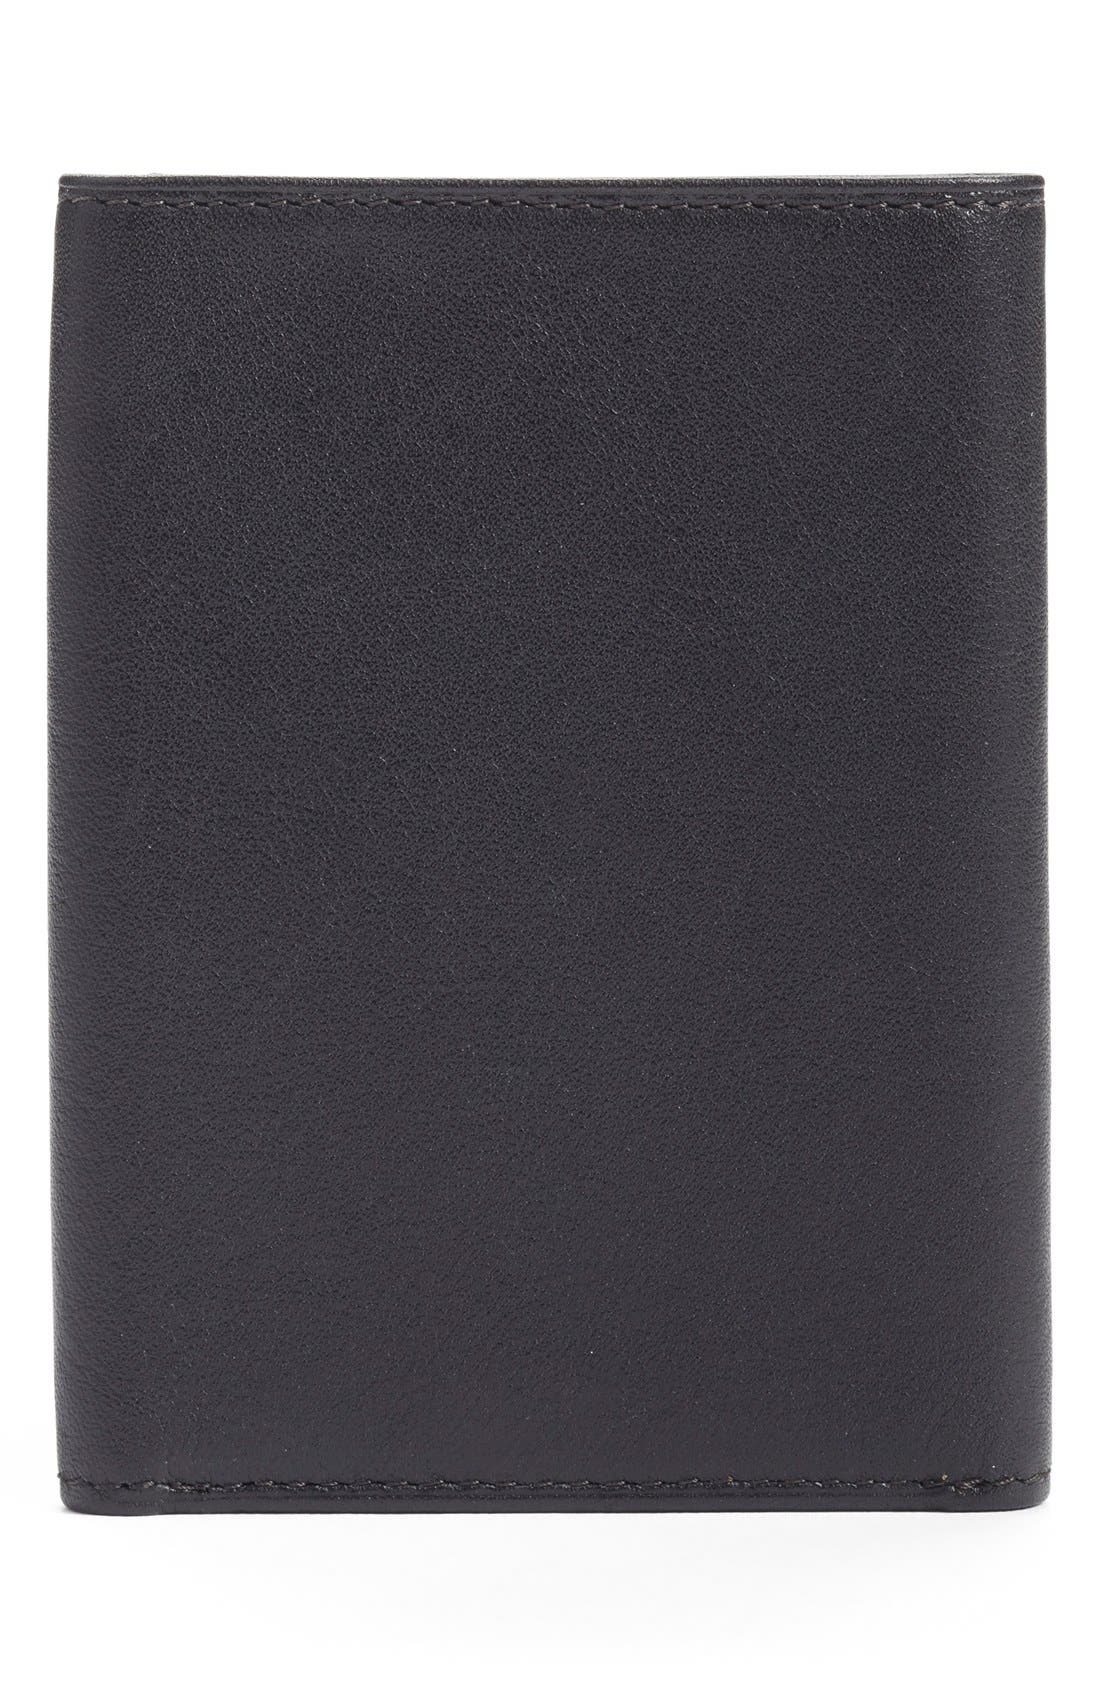 Leather Trifold Wallet,                             Alternate thumbnail 2, color,                             BLACK